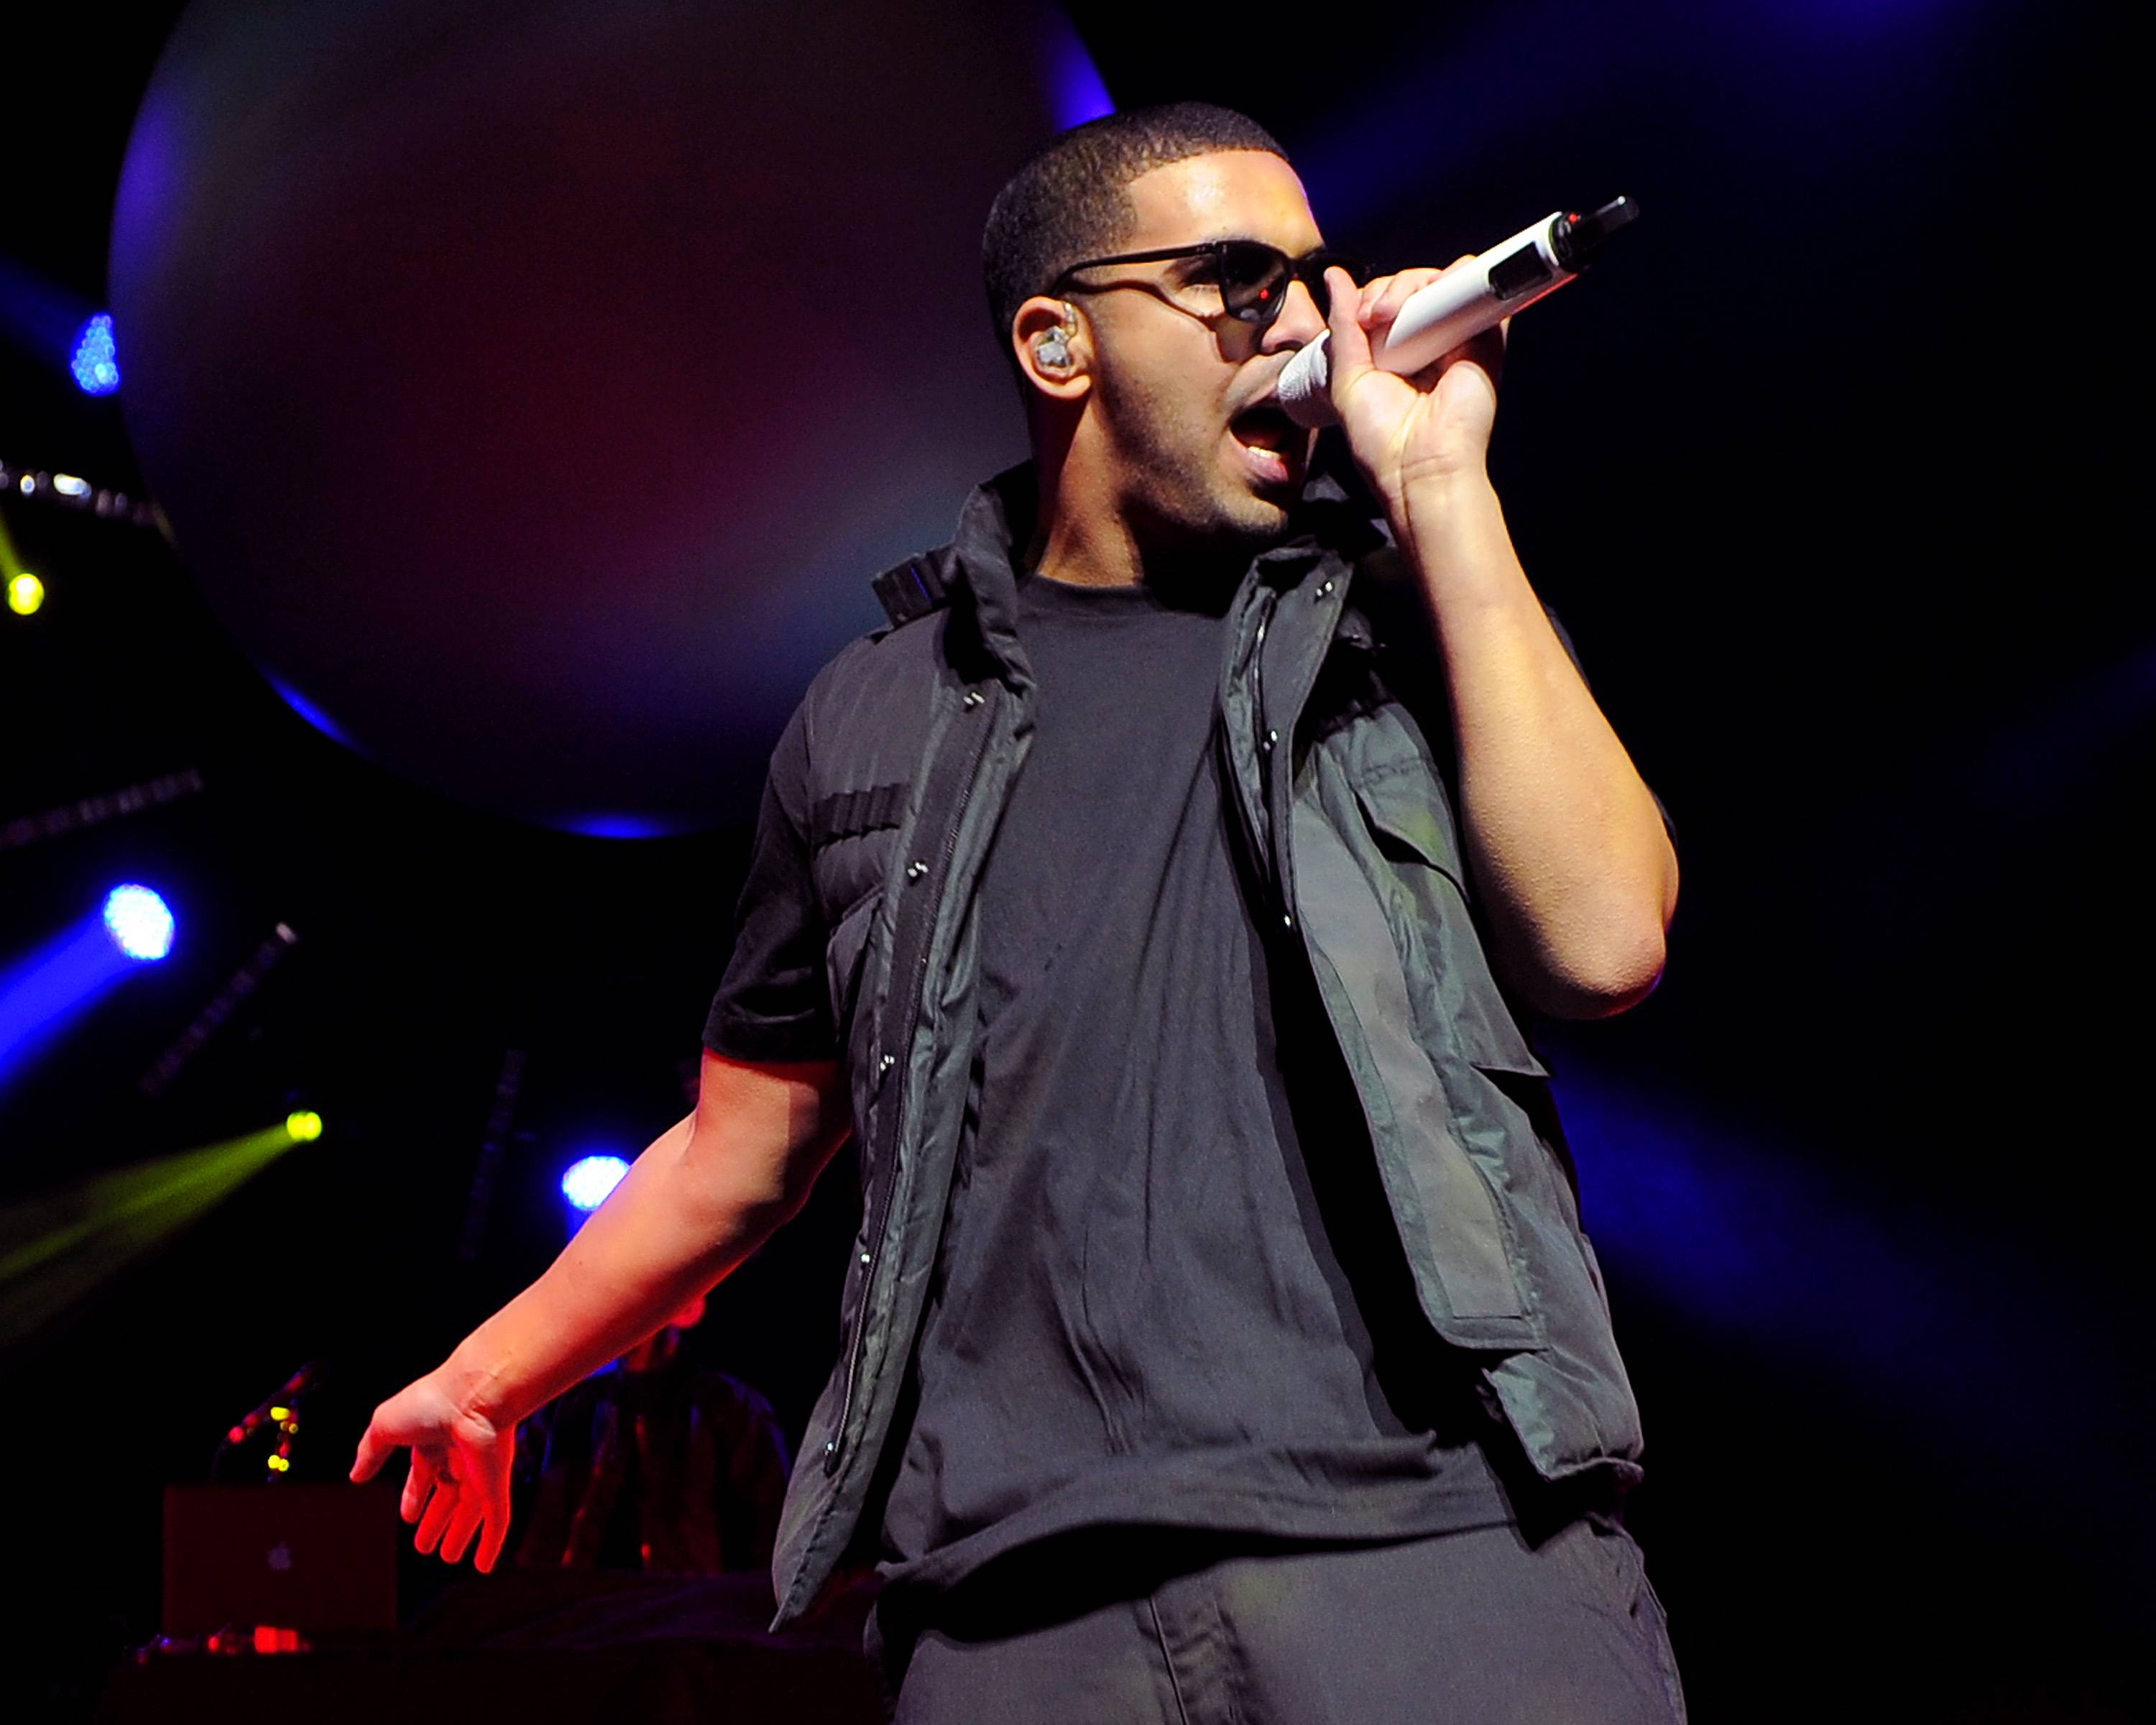 """Drake (@drakkardnoir) - The next time you see Drake, make sure to ask for a photo. He's always taken photos for us at BET.com!TWEET: """"Sorry if you've ever worked up all your courage to ask for a picture and I wasn't able to take it right then. I hate being that guy."""" (Photo: Jeff Daly/PictureGroup)"""